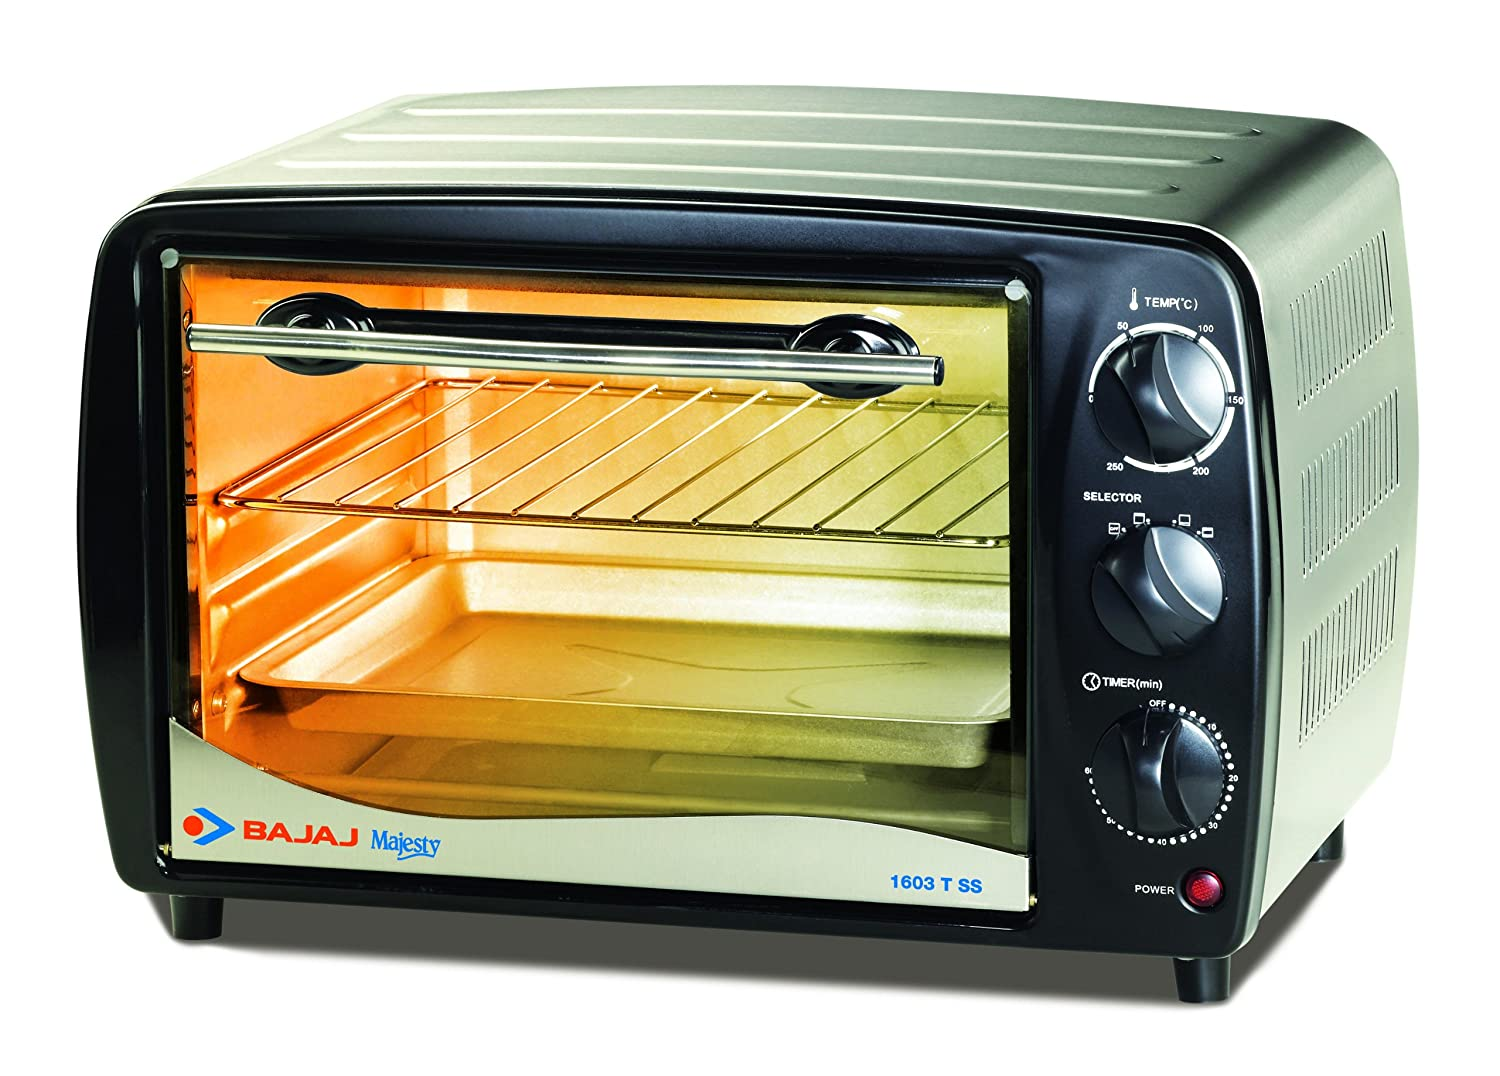 Countertop Oven Grill : Bajaj Majesty 1603 TSS Oven Toaster Grill - Hot Deals - Online Forum ...